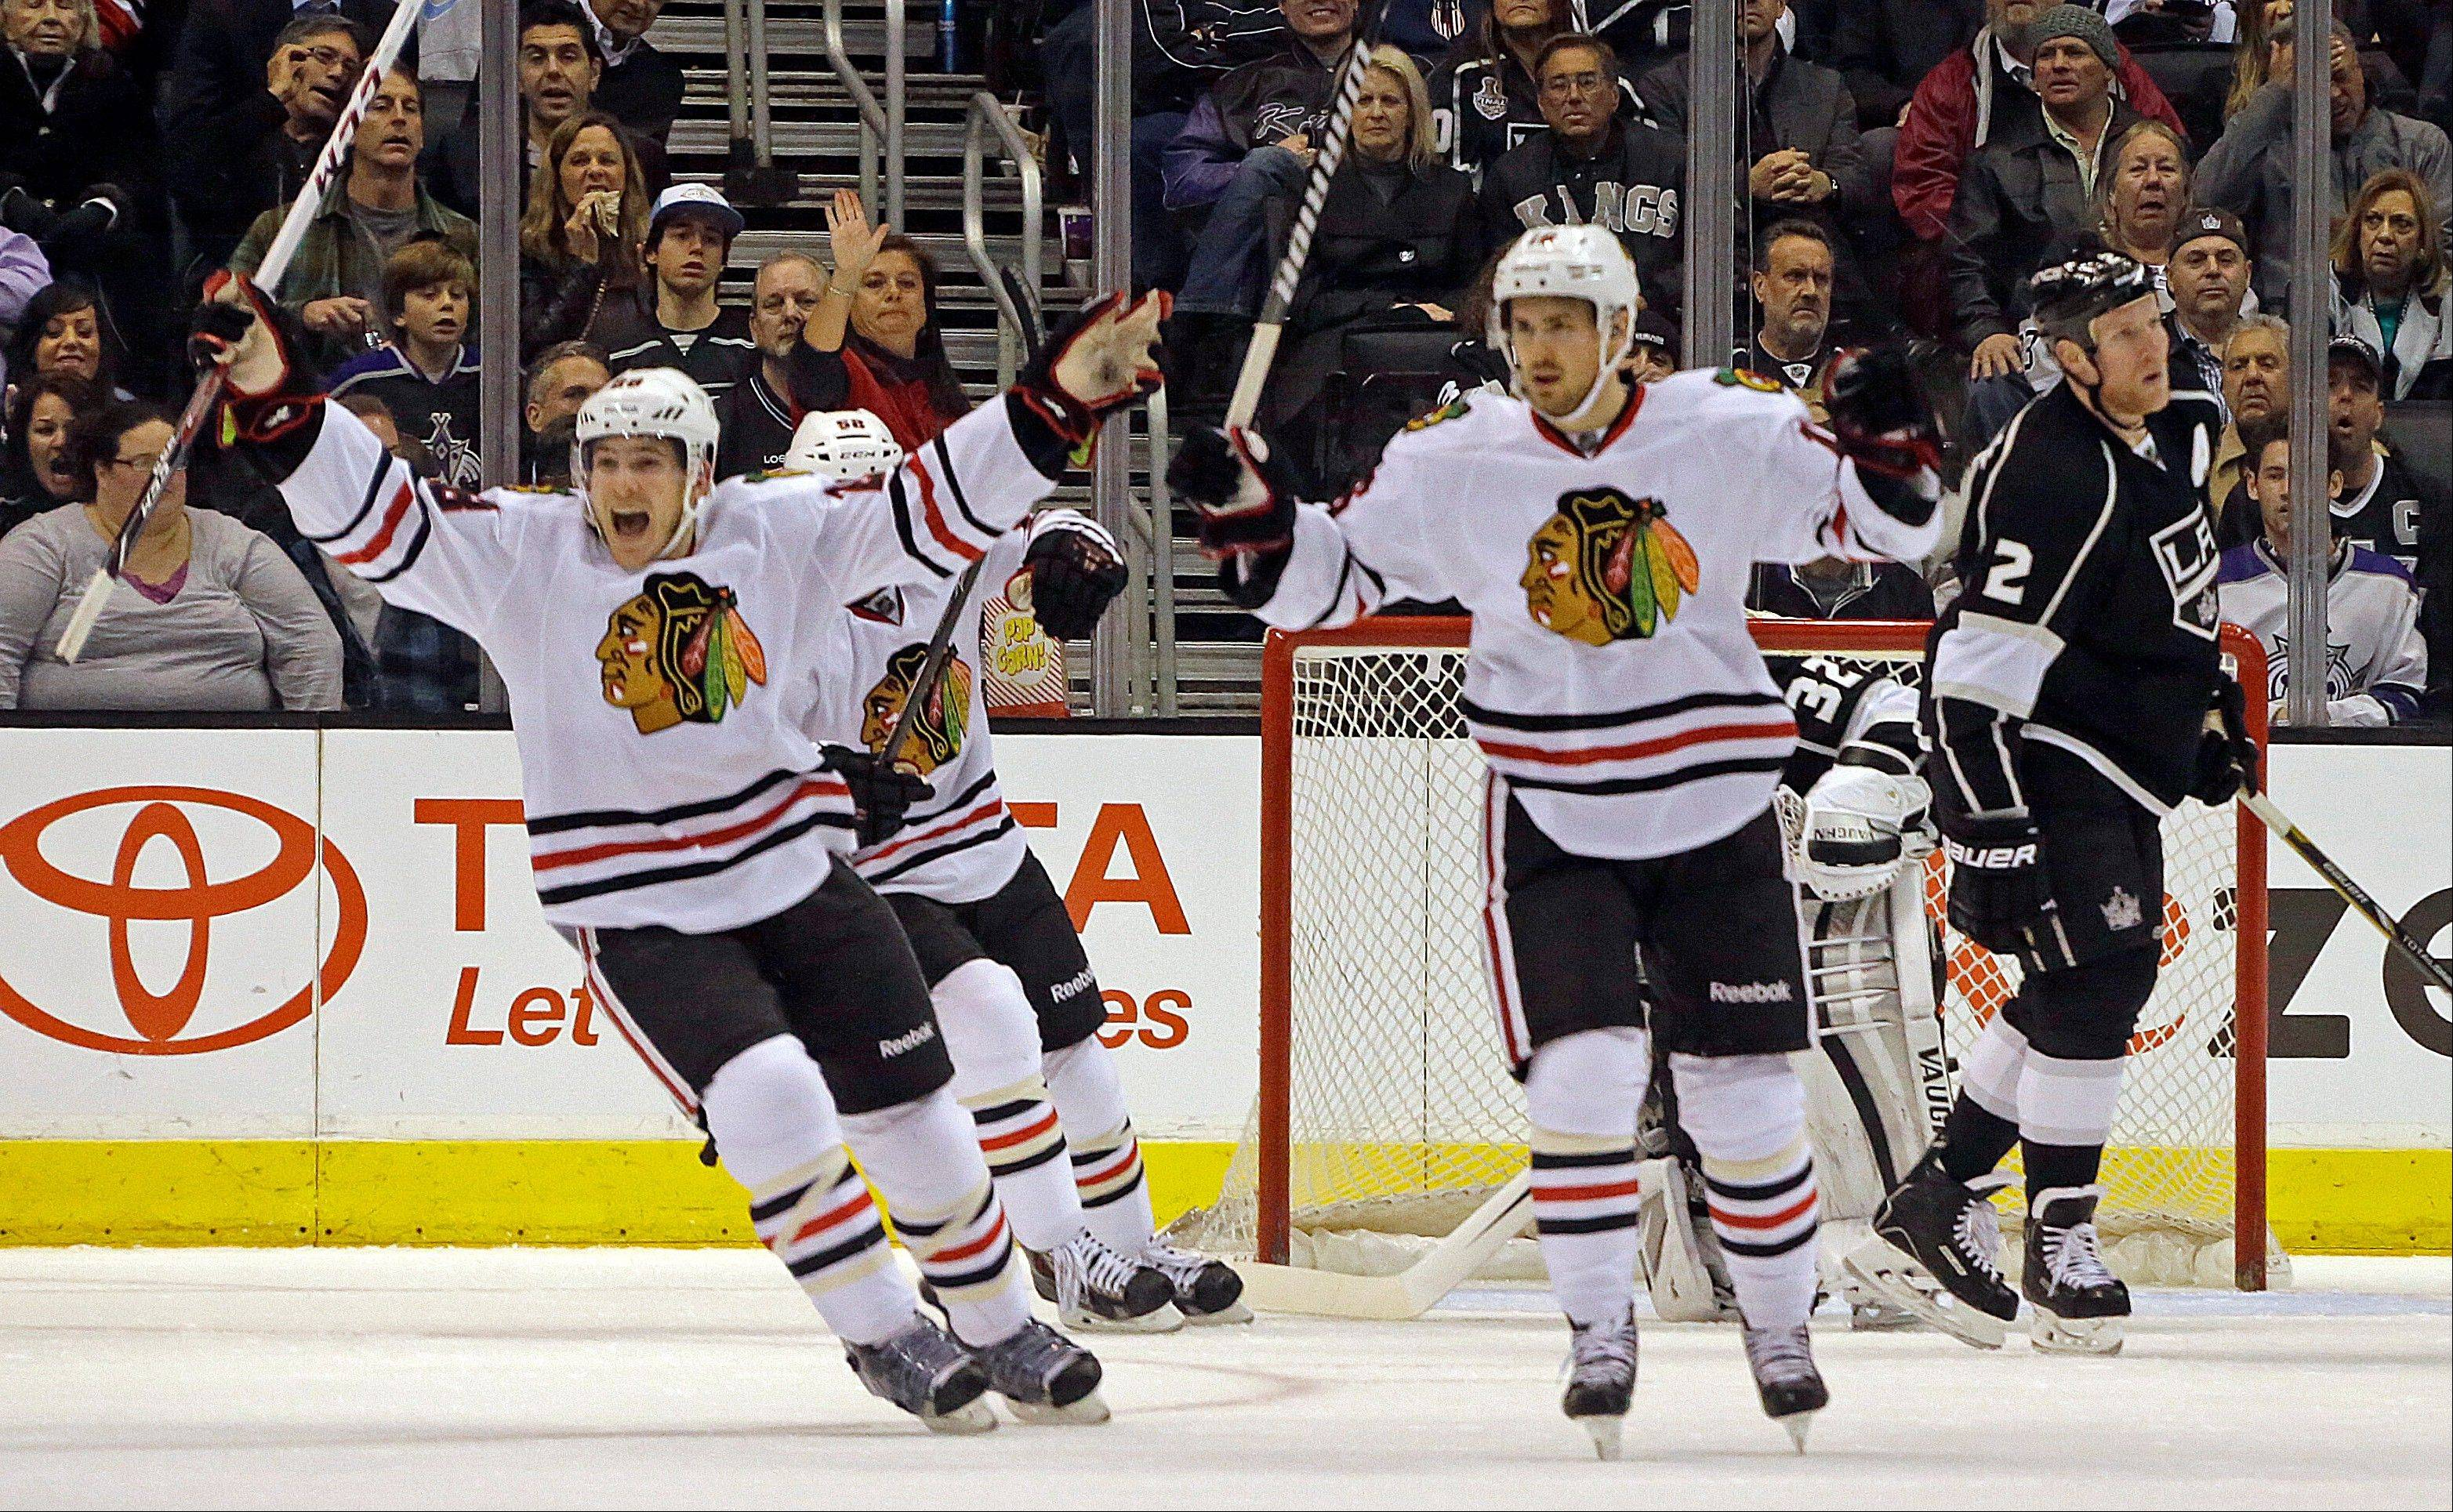 Ben Smith (28), left, and defenseman Michael Kostka (6) celebrate a goal by Marcus Kruger, not shown, against Los Angeles Kings goalie Jonathan Quick (32) and defenseman Matt Greene (2) look on in the second period of their game in Los Angeles, Monday, Feb. 3, 2014.